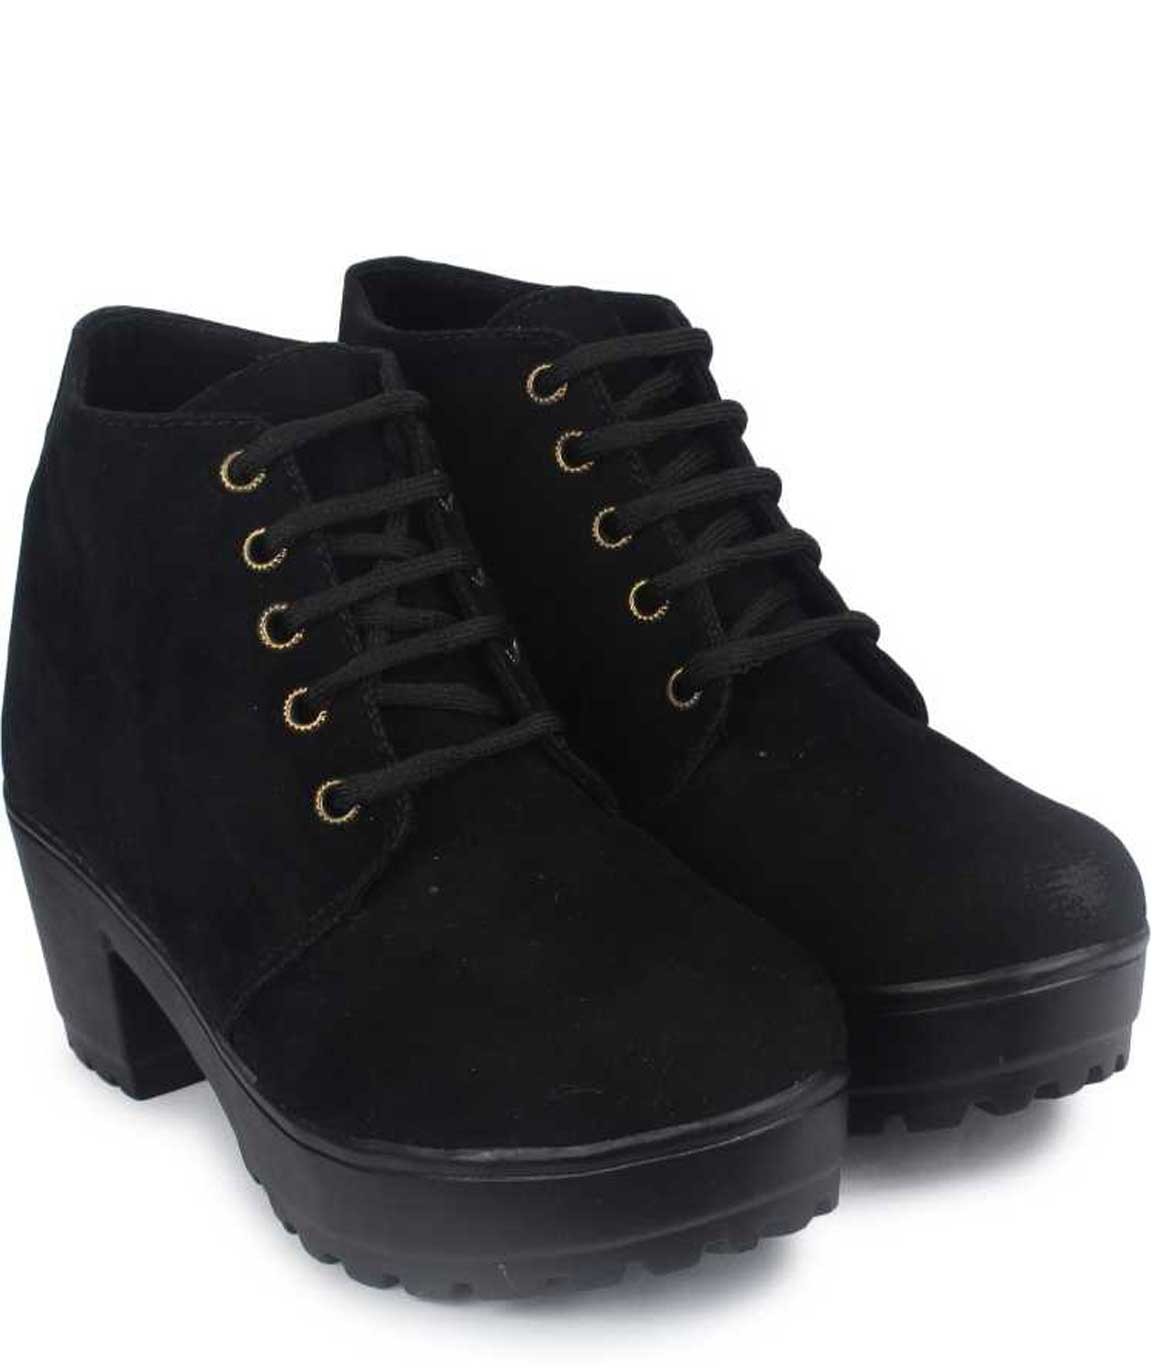 BOOTS FOR WOMEN ( BLACK-Z )